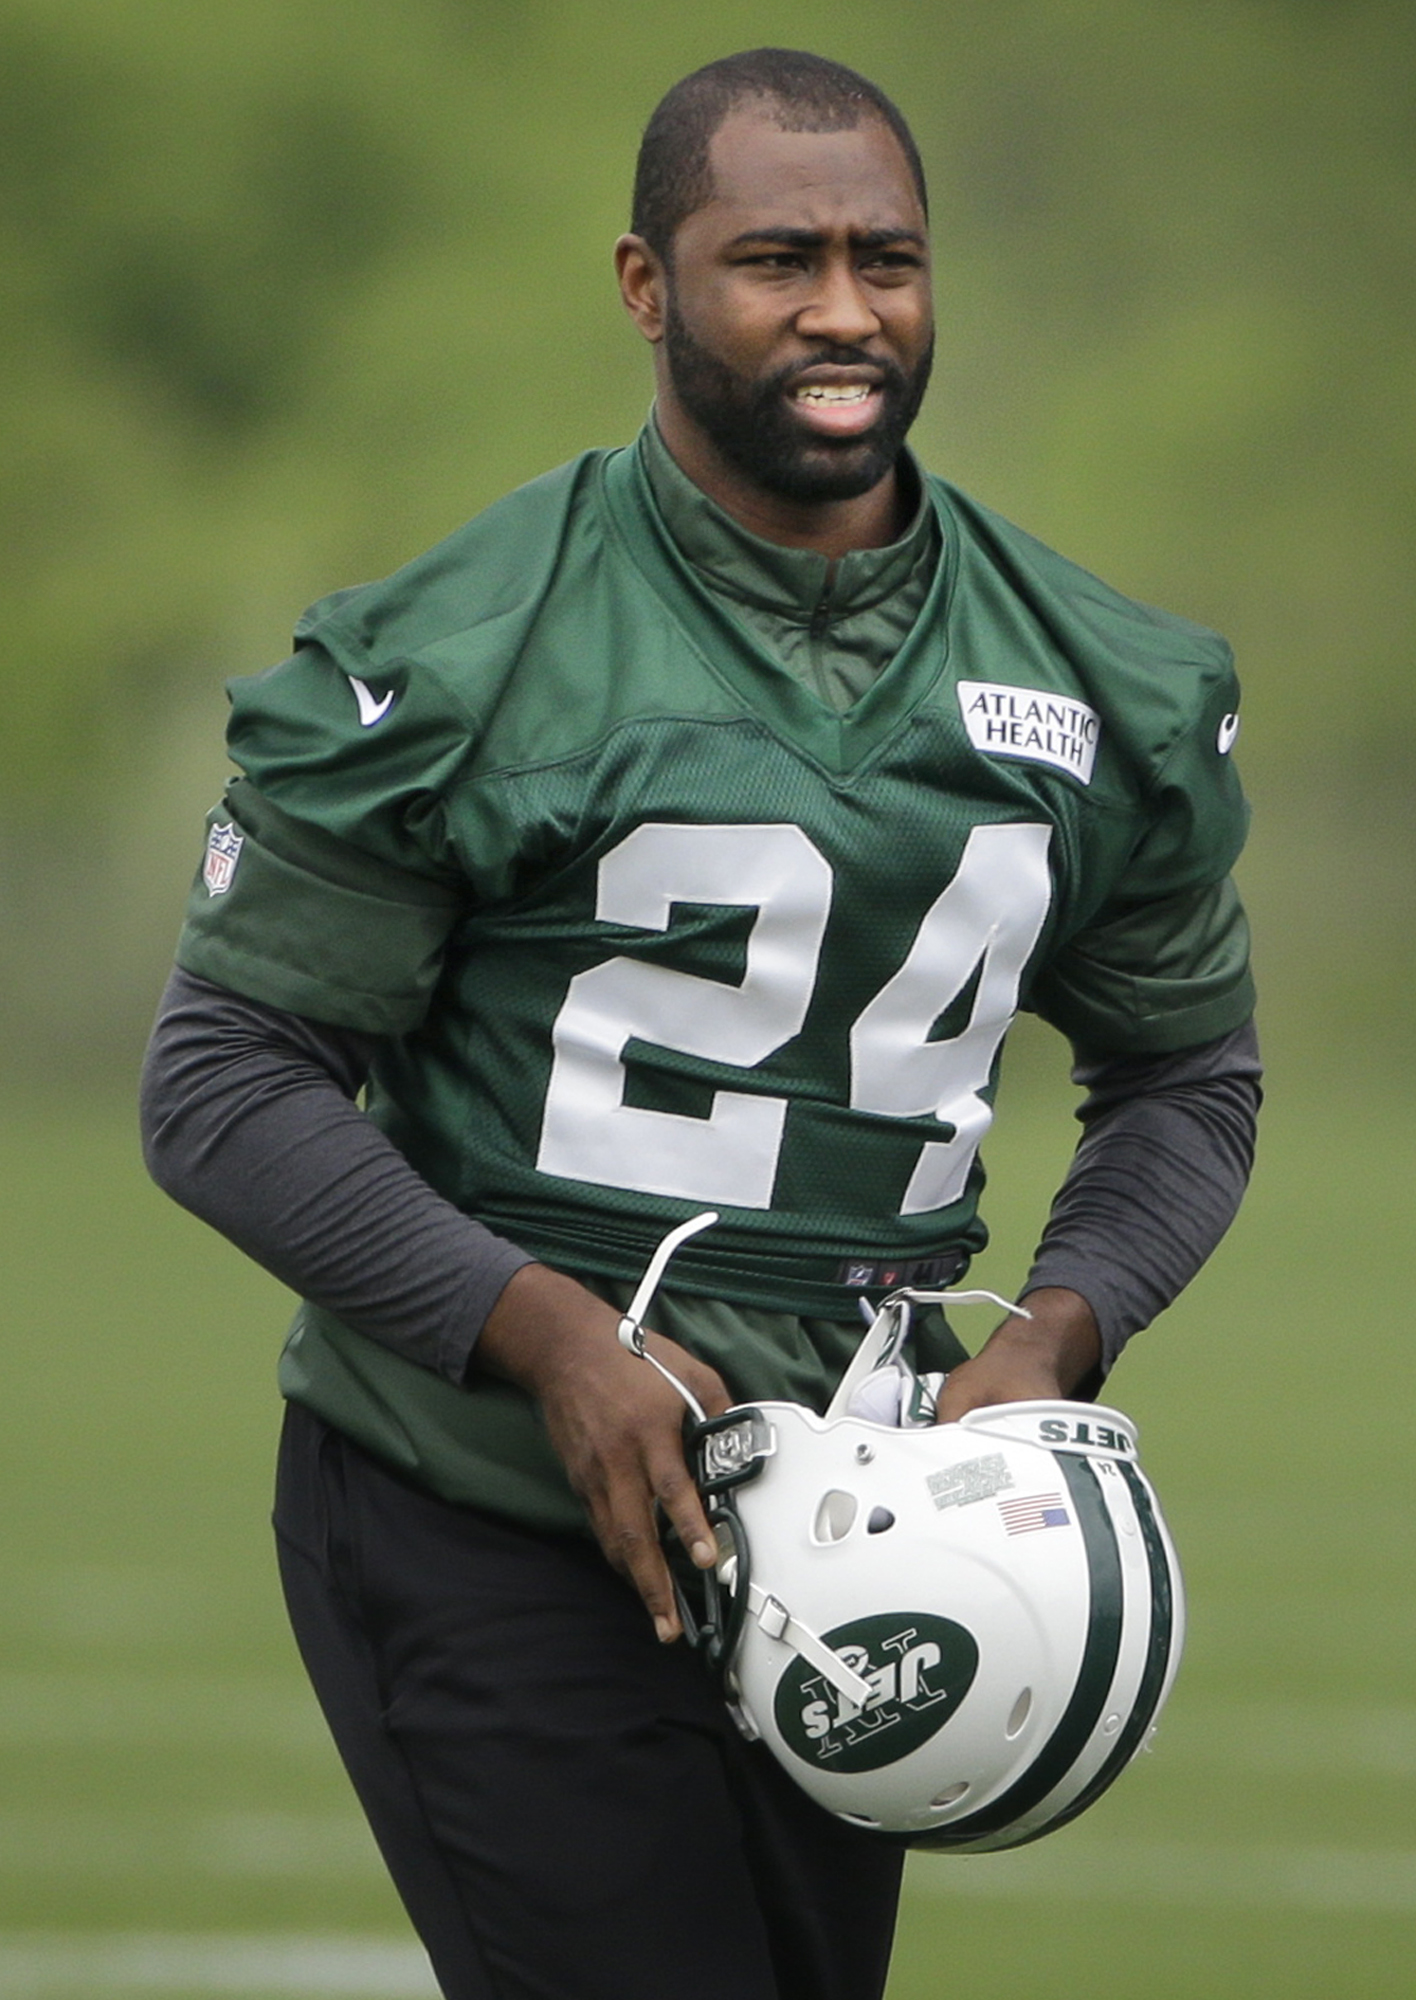 FILE - In this May 27, 2015, file photo, New York Jets' Darrelle Revis gets ready for an NFL football organized team activity in Florham Park, N.J. After the Jets struggled with an injury-filled and inconsistent secondary, they brought back free-agent cor